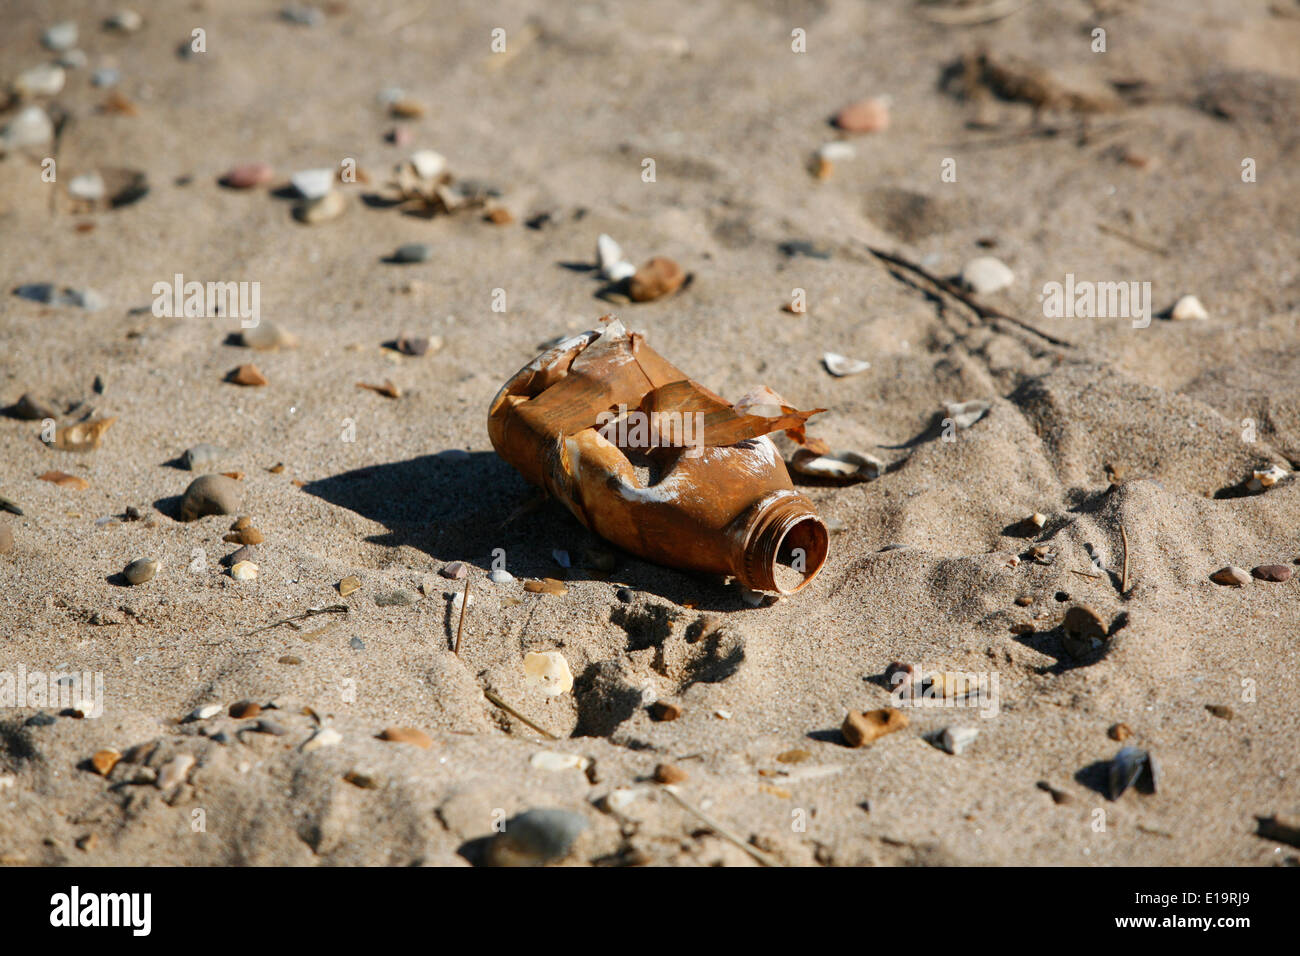 A plastic bottle washed up on a beach as rubbish. - Stock Image